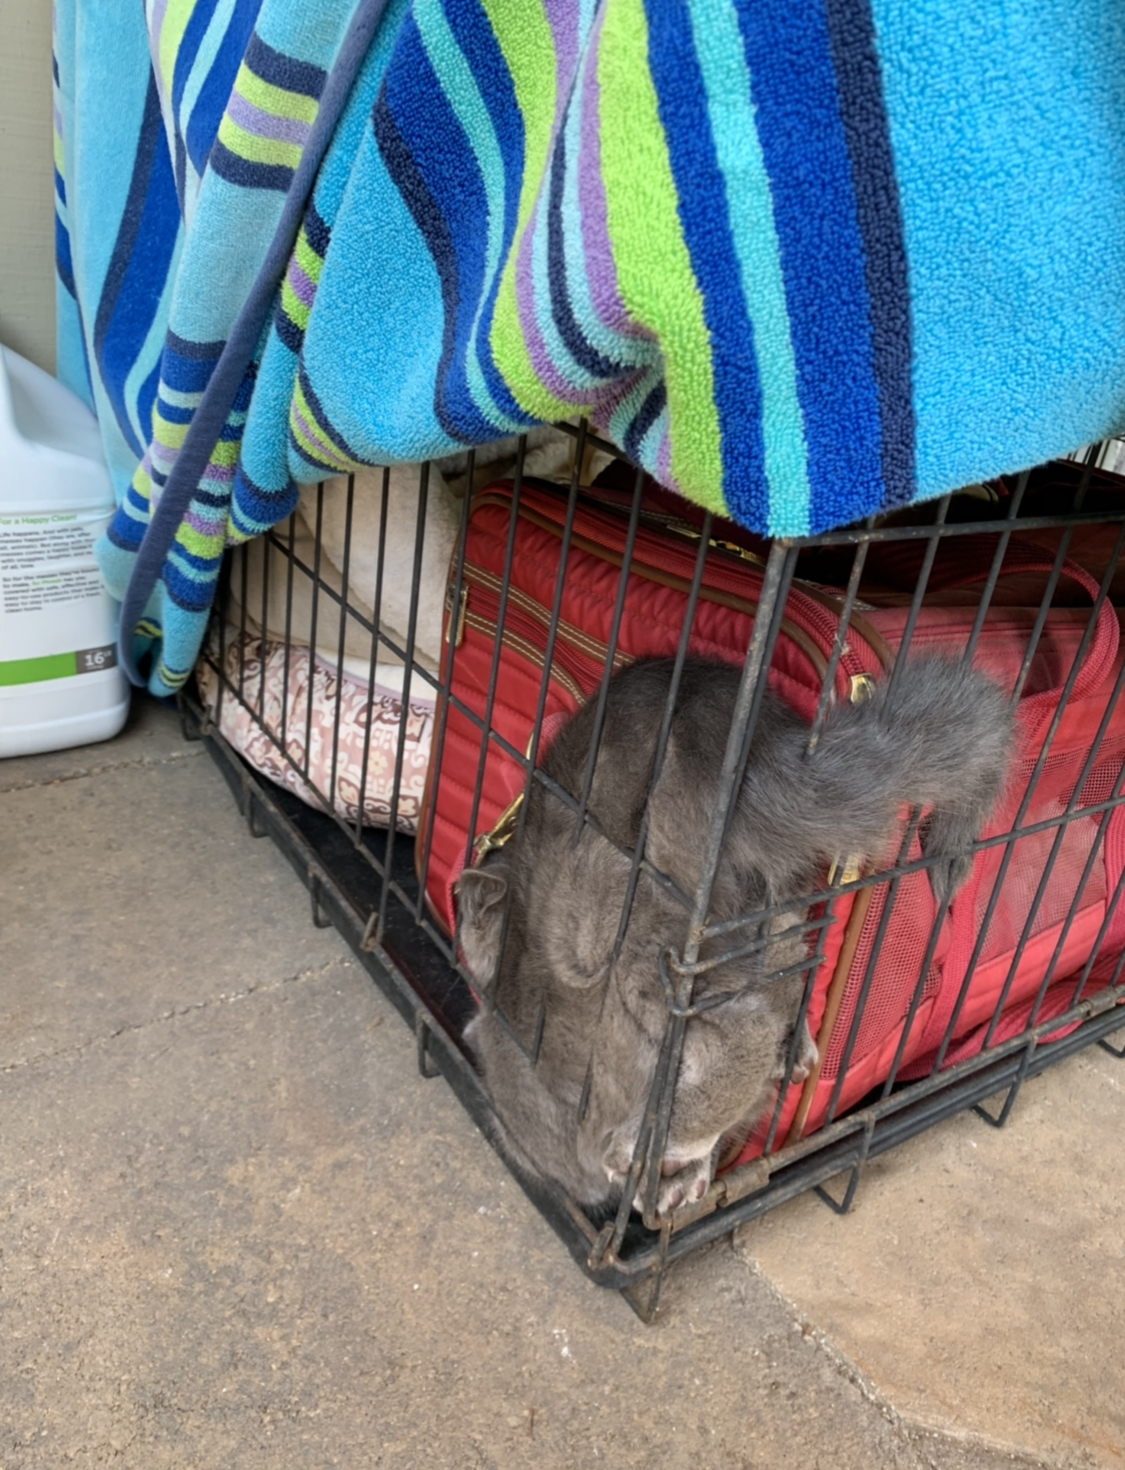 NotLou trying to find a way out- he's fine, I moved the carrier…